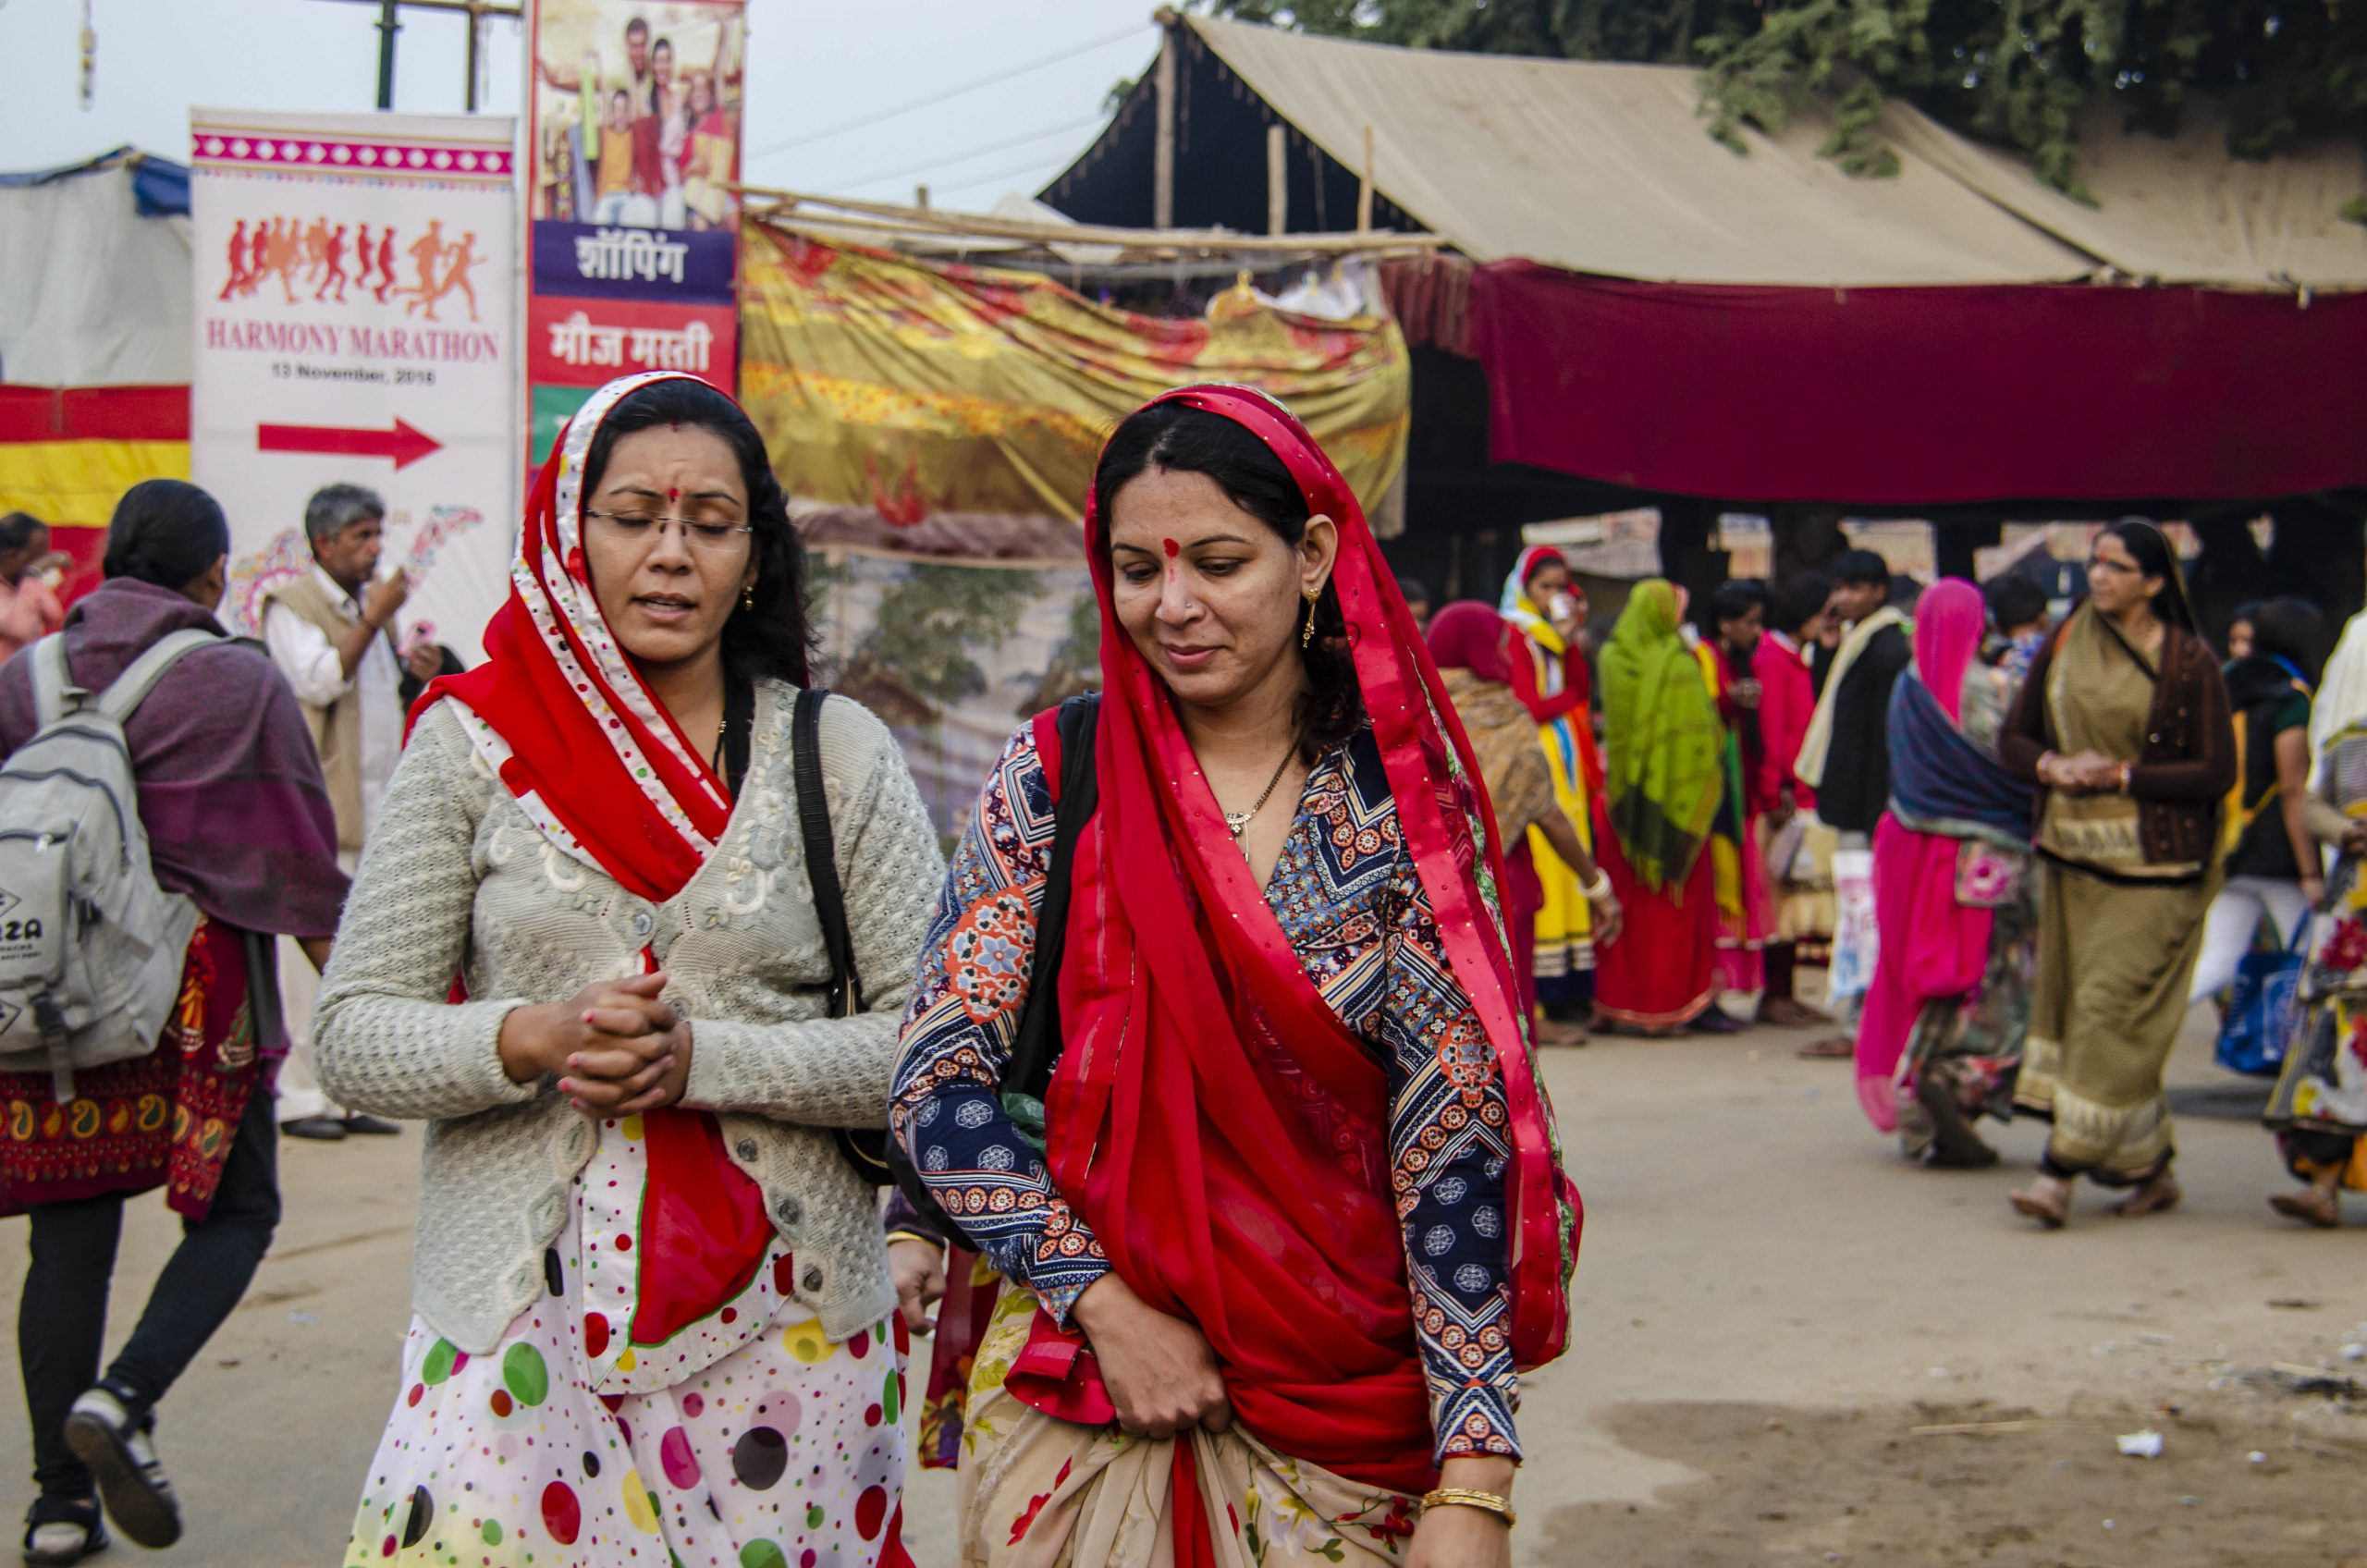 Two women in a village fair